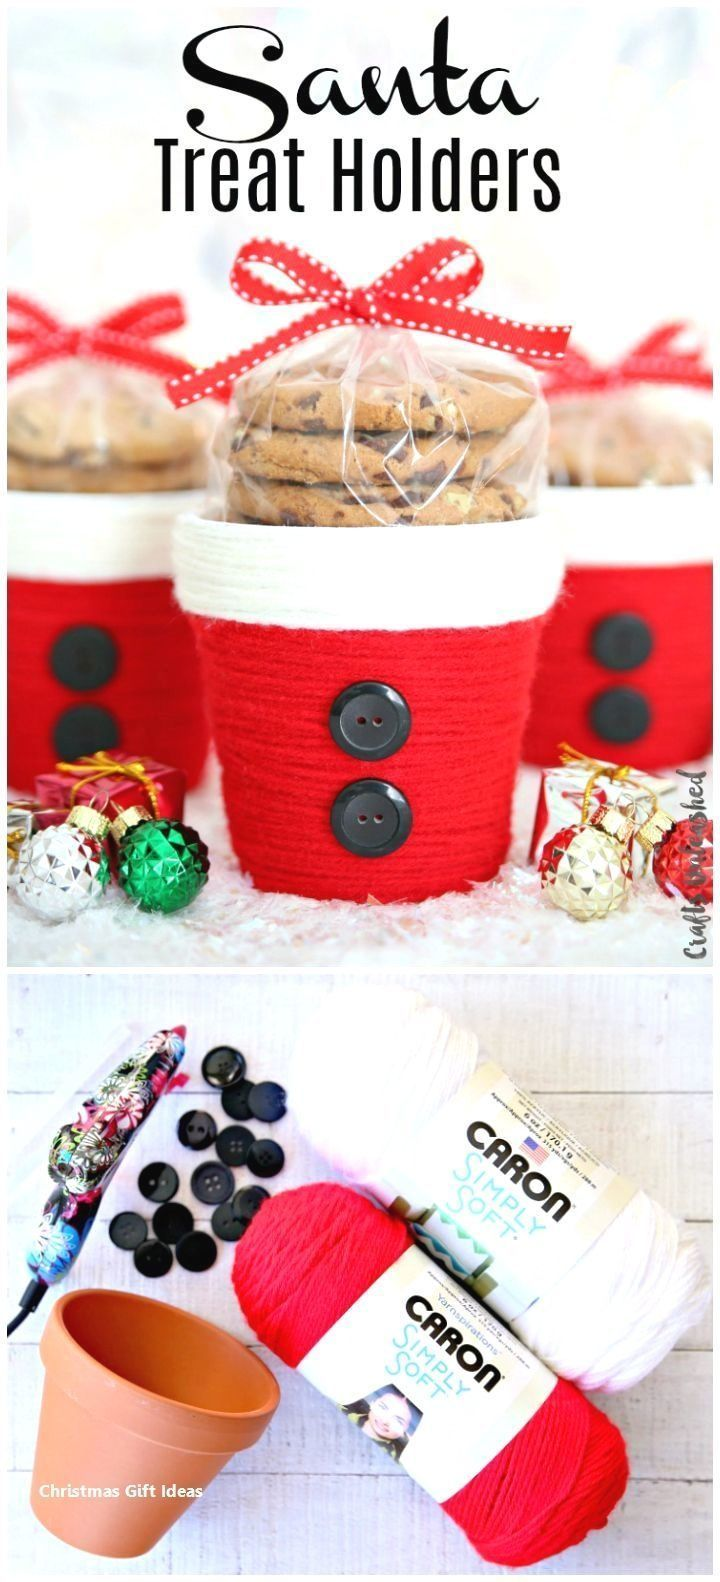 Holiday Gift Ideas Pinwire Christmas Gifts New Christmas Gift Ideas Christmasgifts Diy Christmas Treats Christmas Treats Holders Homemade Christmas Gifts